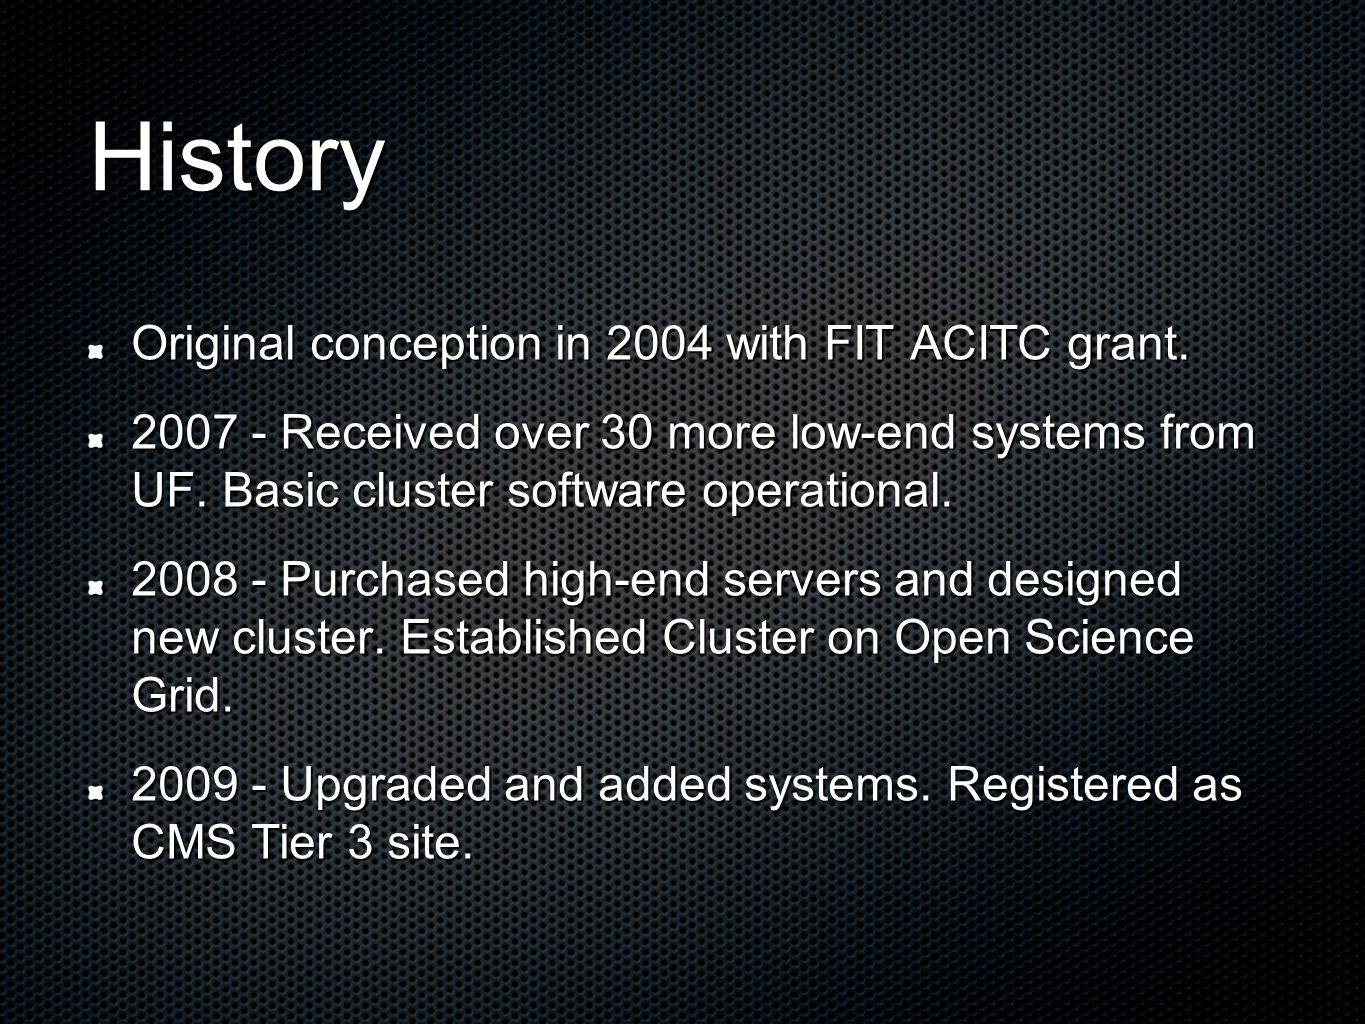 History Original conception in 2004 with FIT ACITC grant. 2007 - Received over 30 more low-end systems from UF. Basic cluster software operational. 20